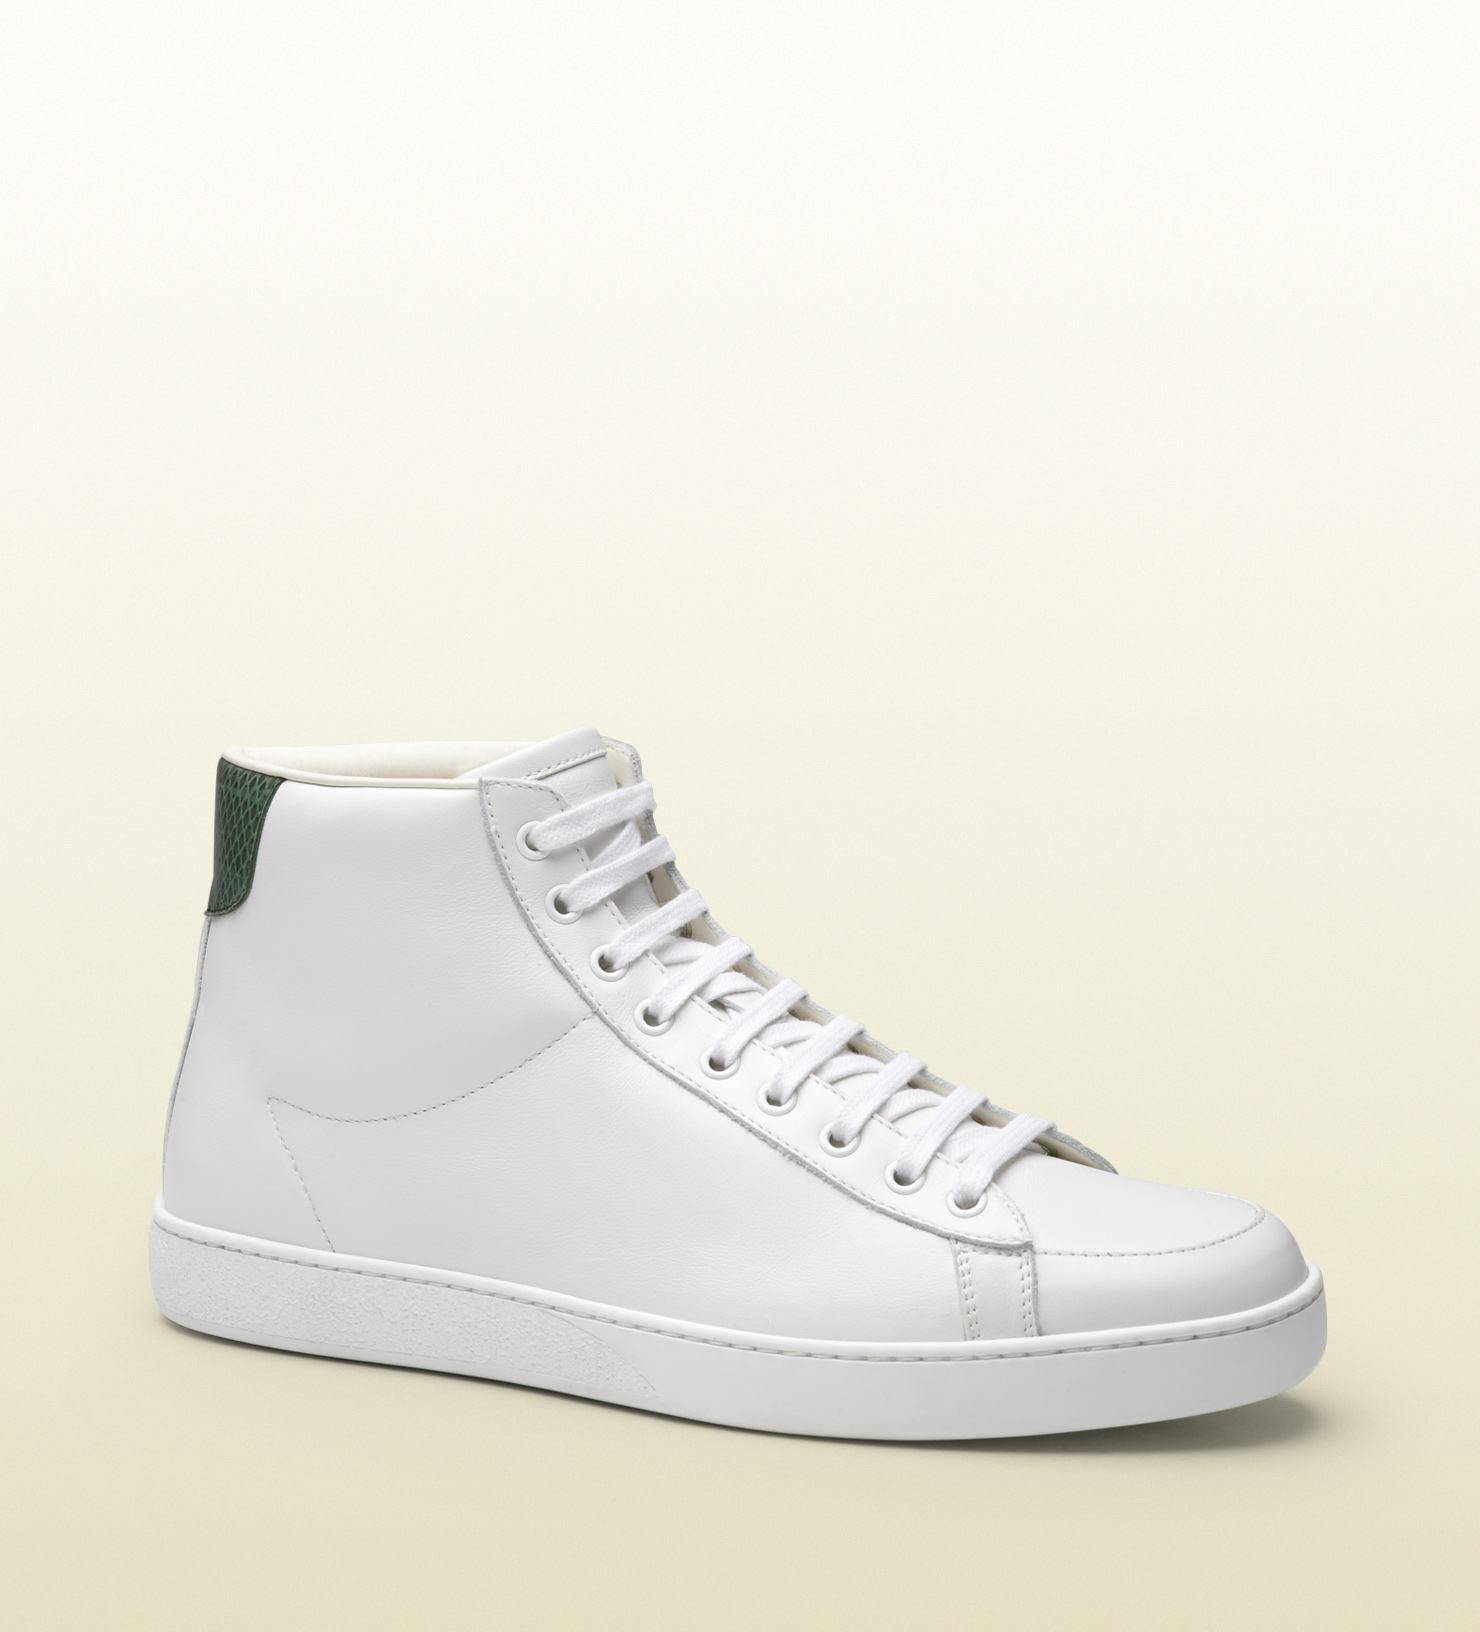 gucci high top sneakers white 28 images gucci coda hi. Black Bedroom Furniture Sets. Home Design Ideas